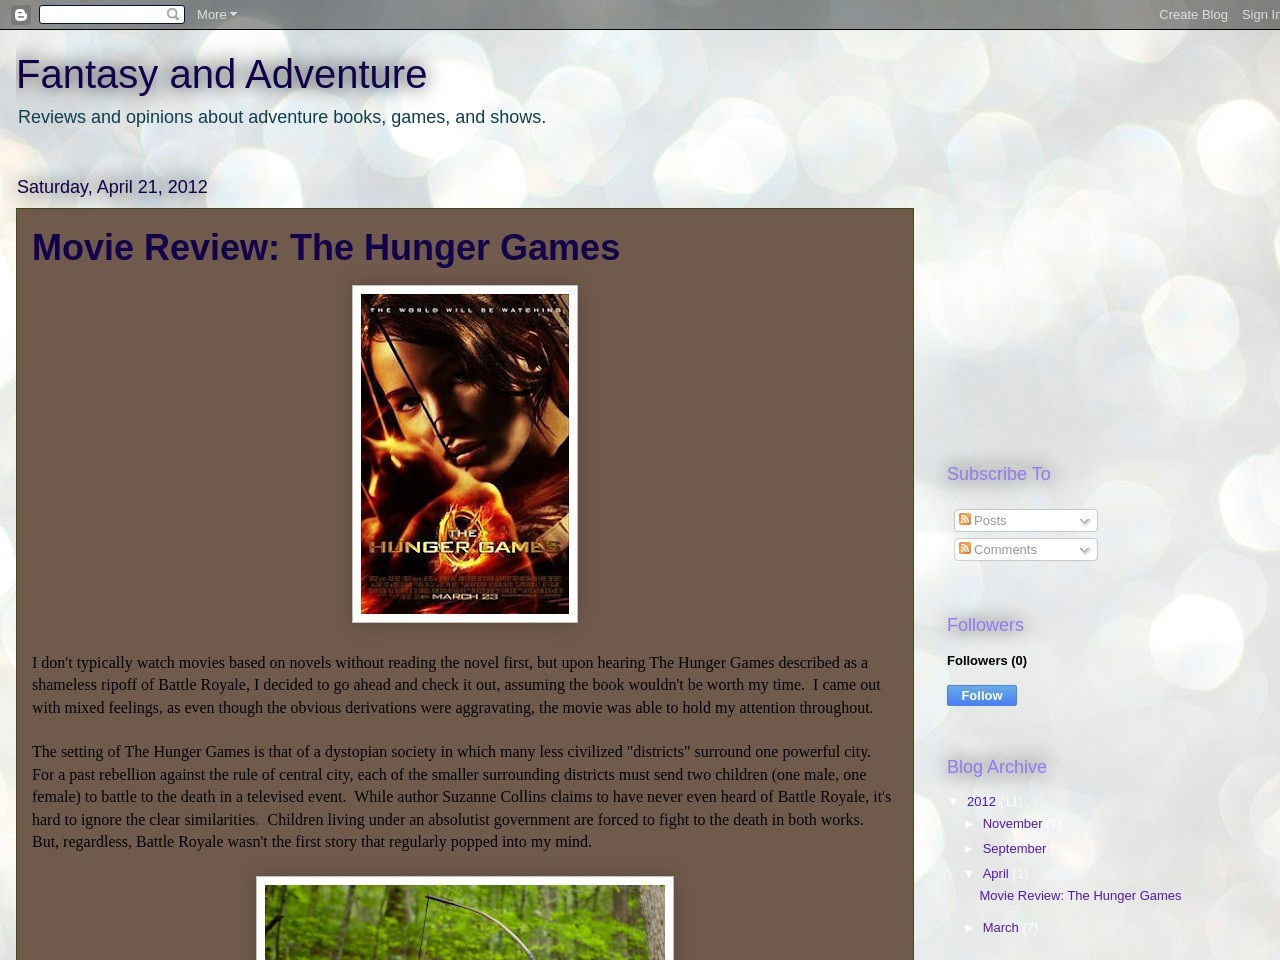 Fantasy and Adventure: Movie Review: The Hunger Games